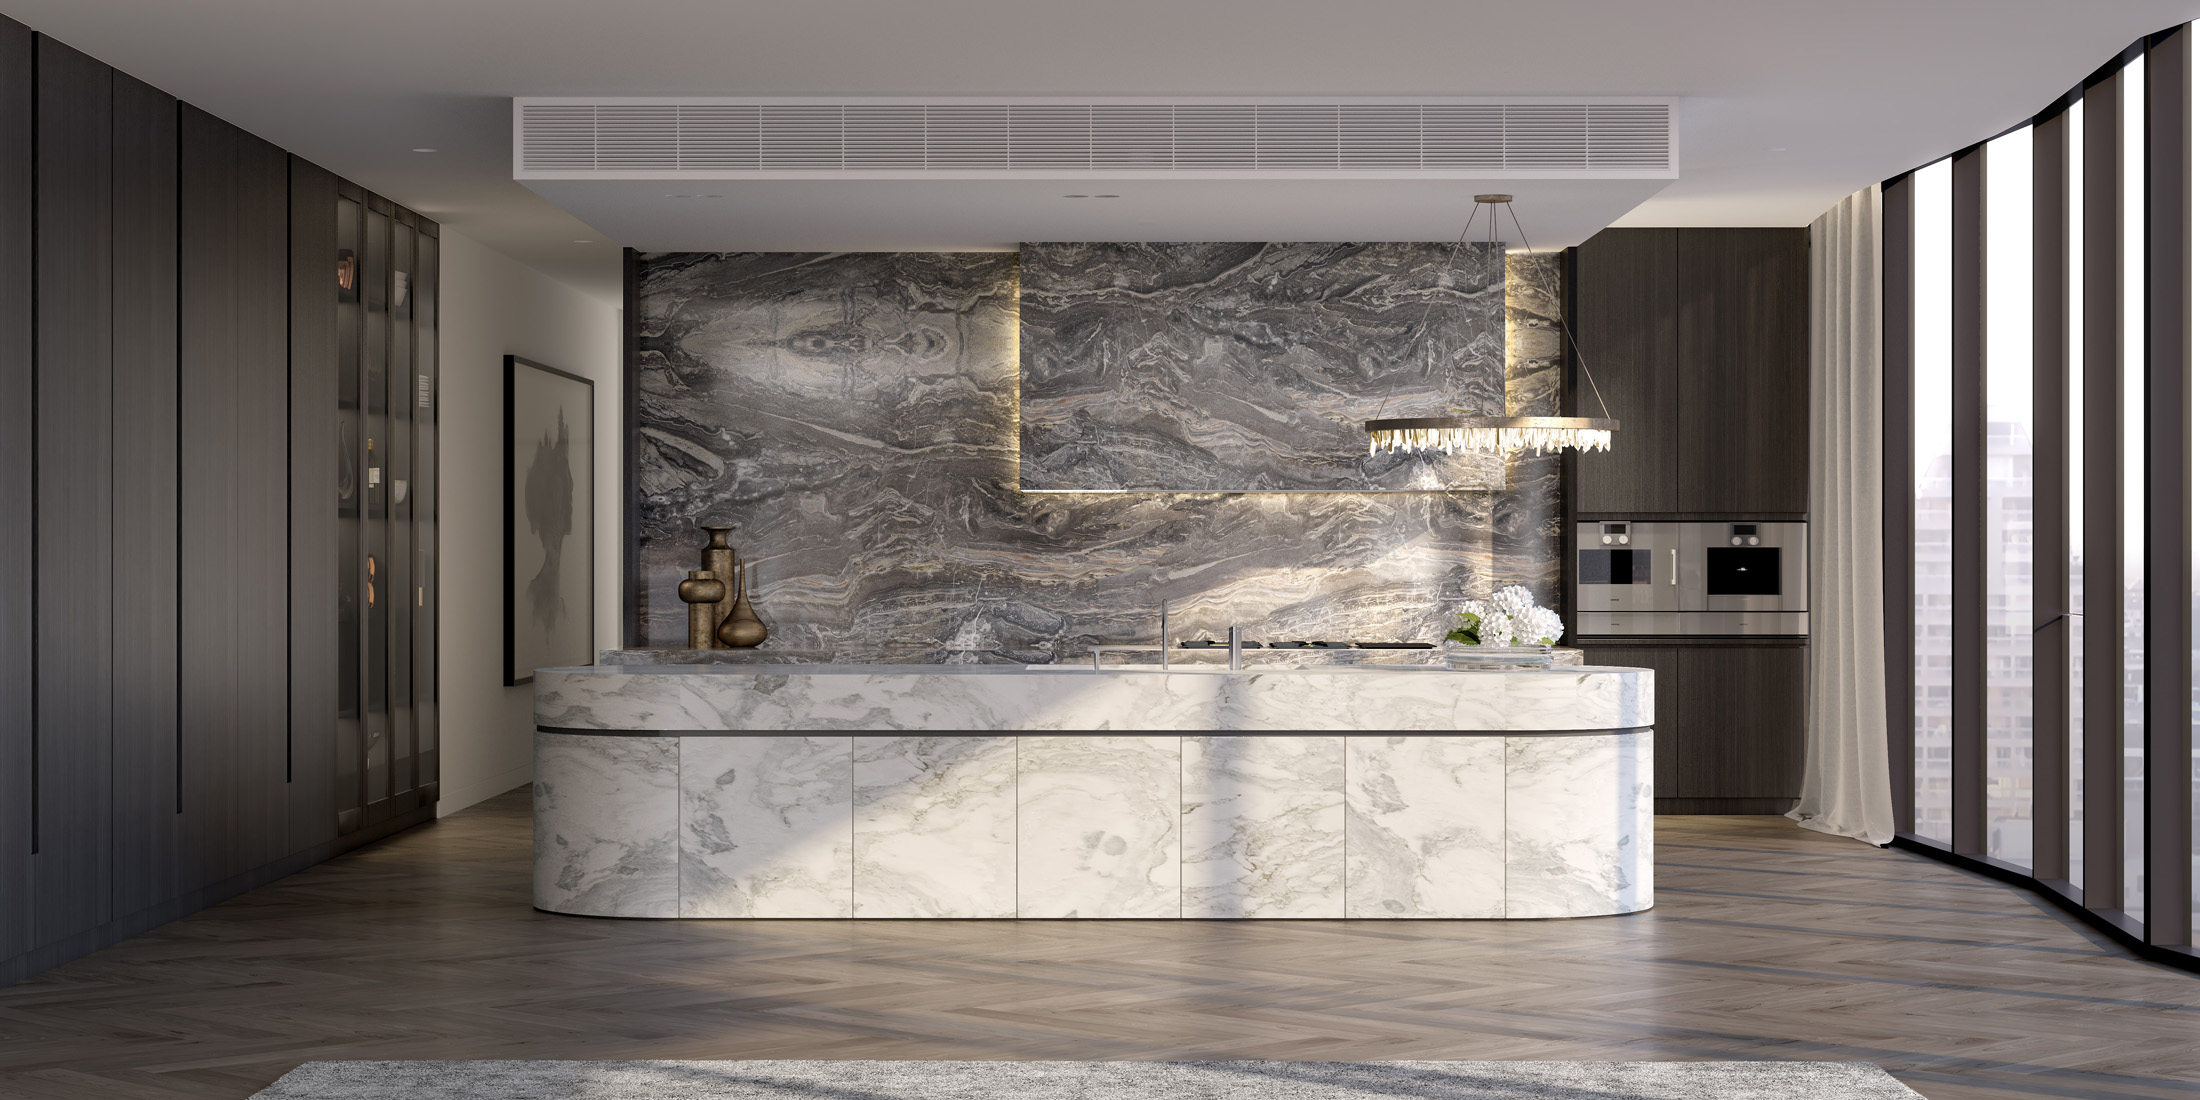 The-Muse-apartment-living-image-photography-3d-renders-FKD-studio-marble-kitchen